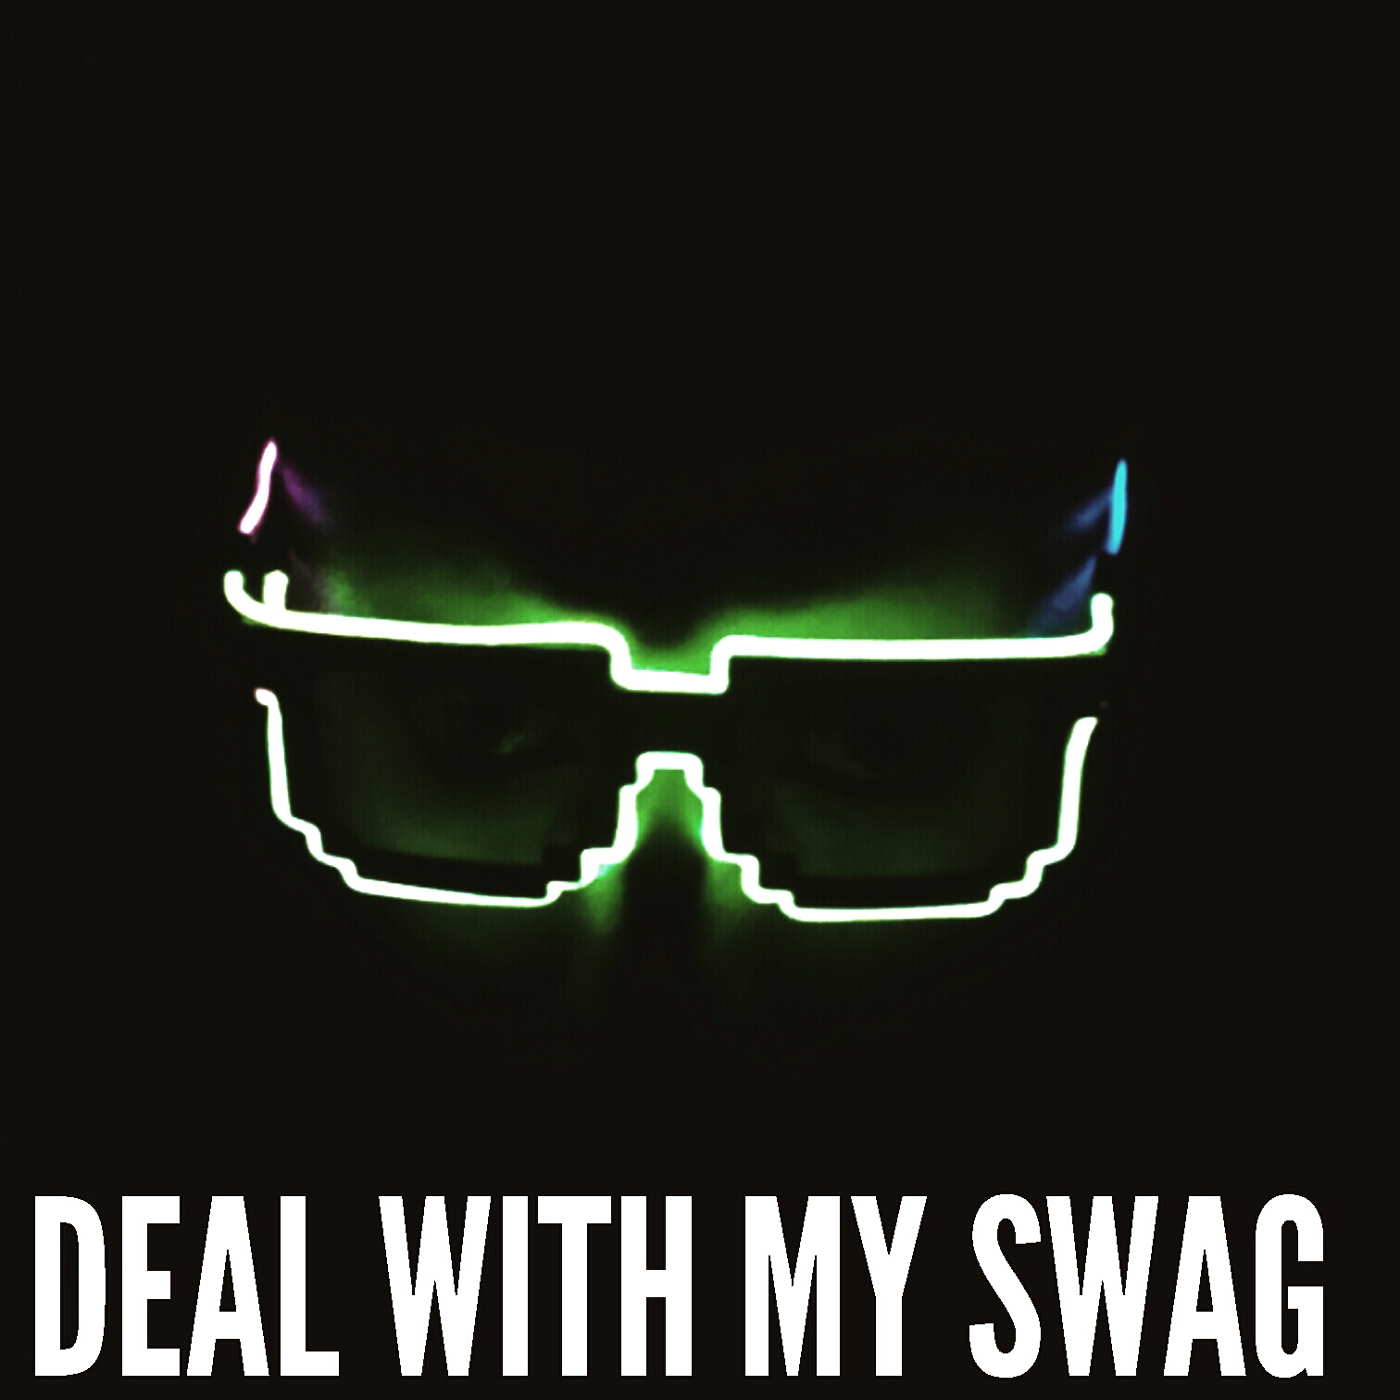 Deal With My Swag